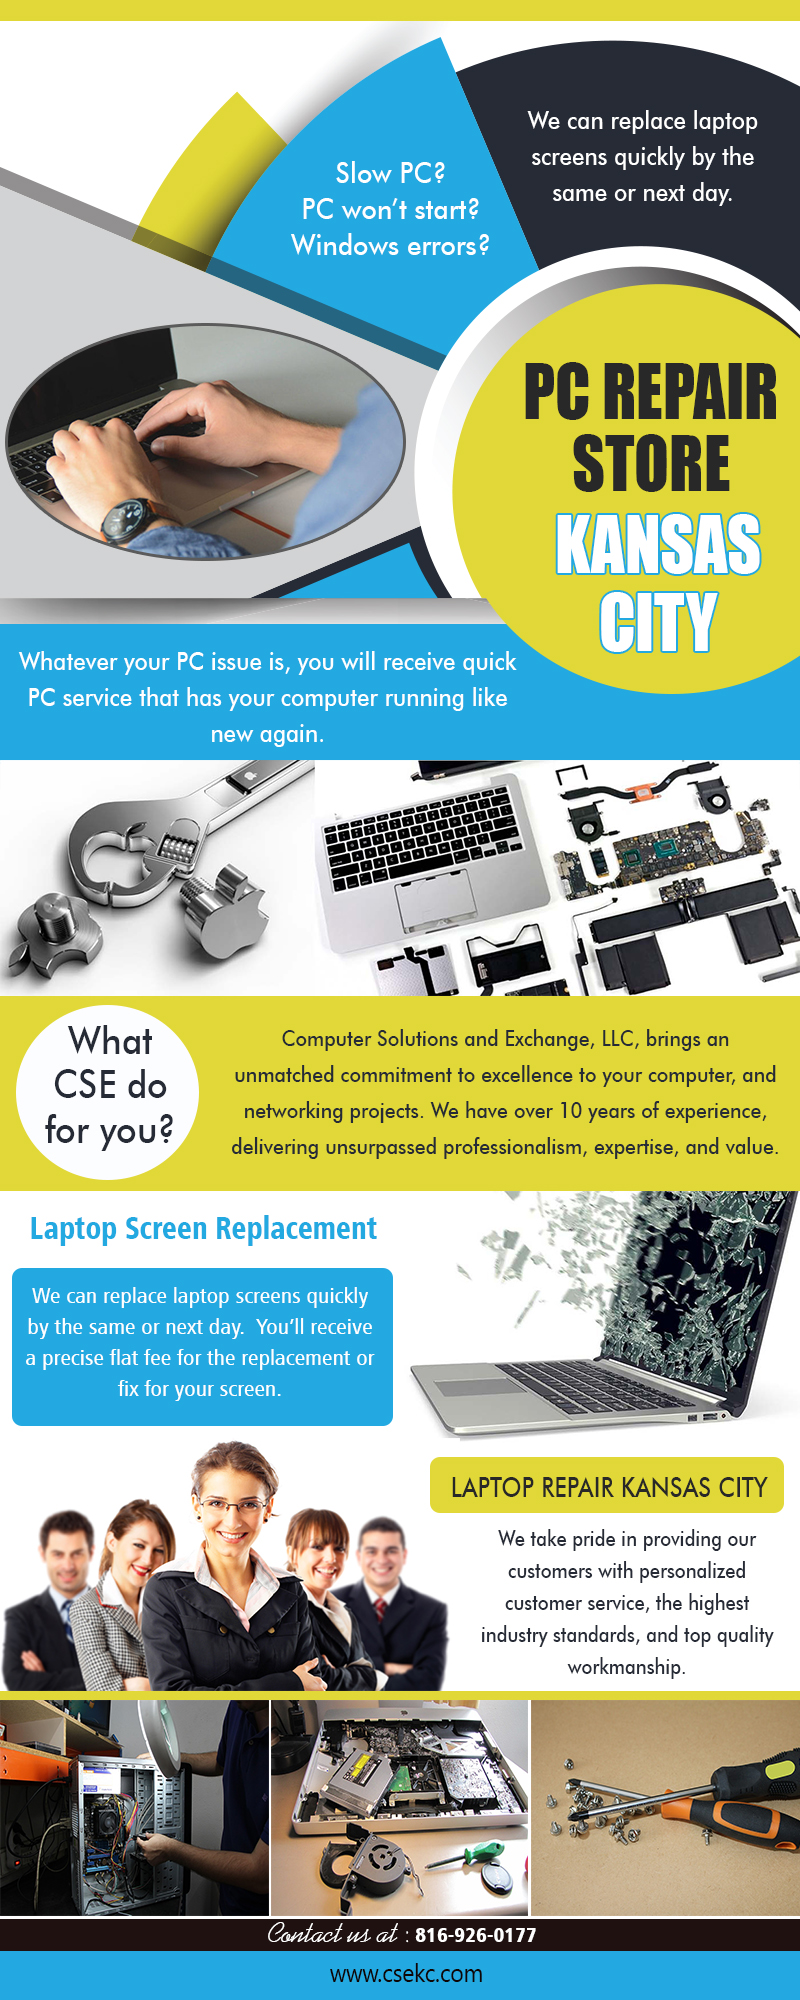 PC Repair Store Kansas City